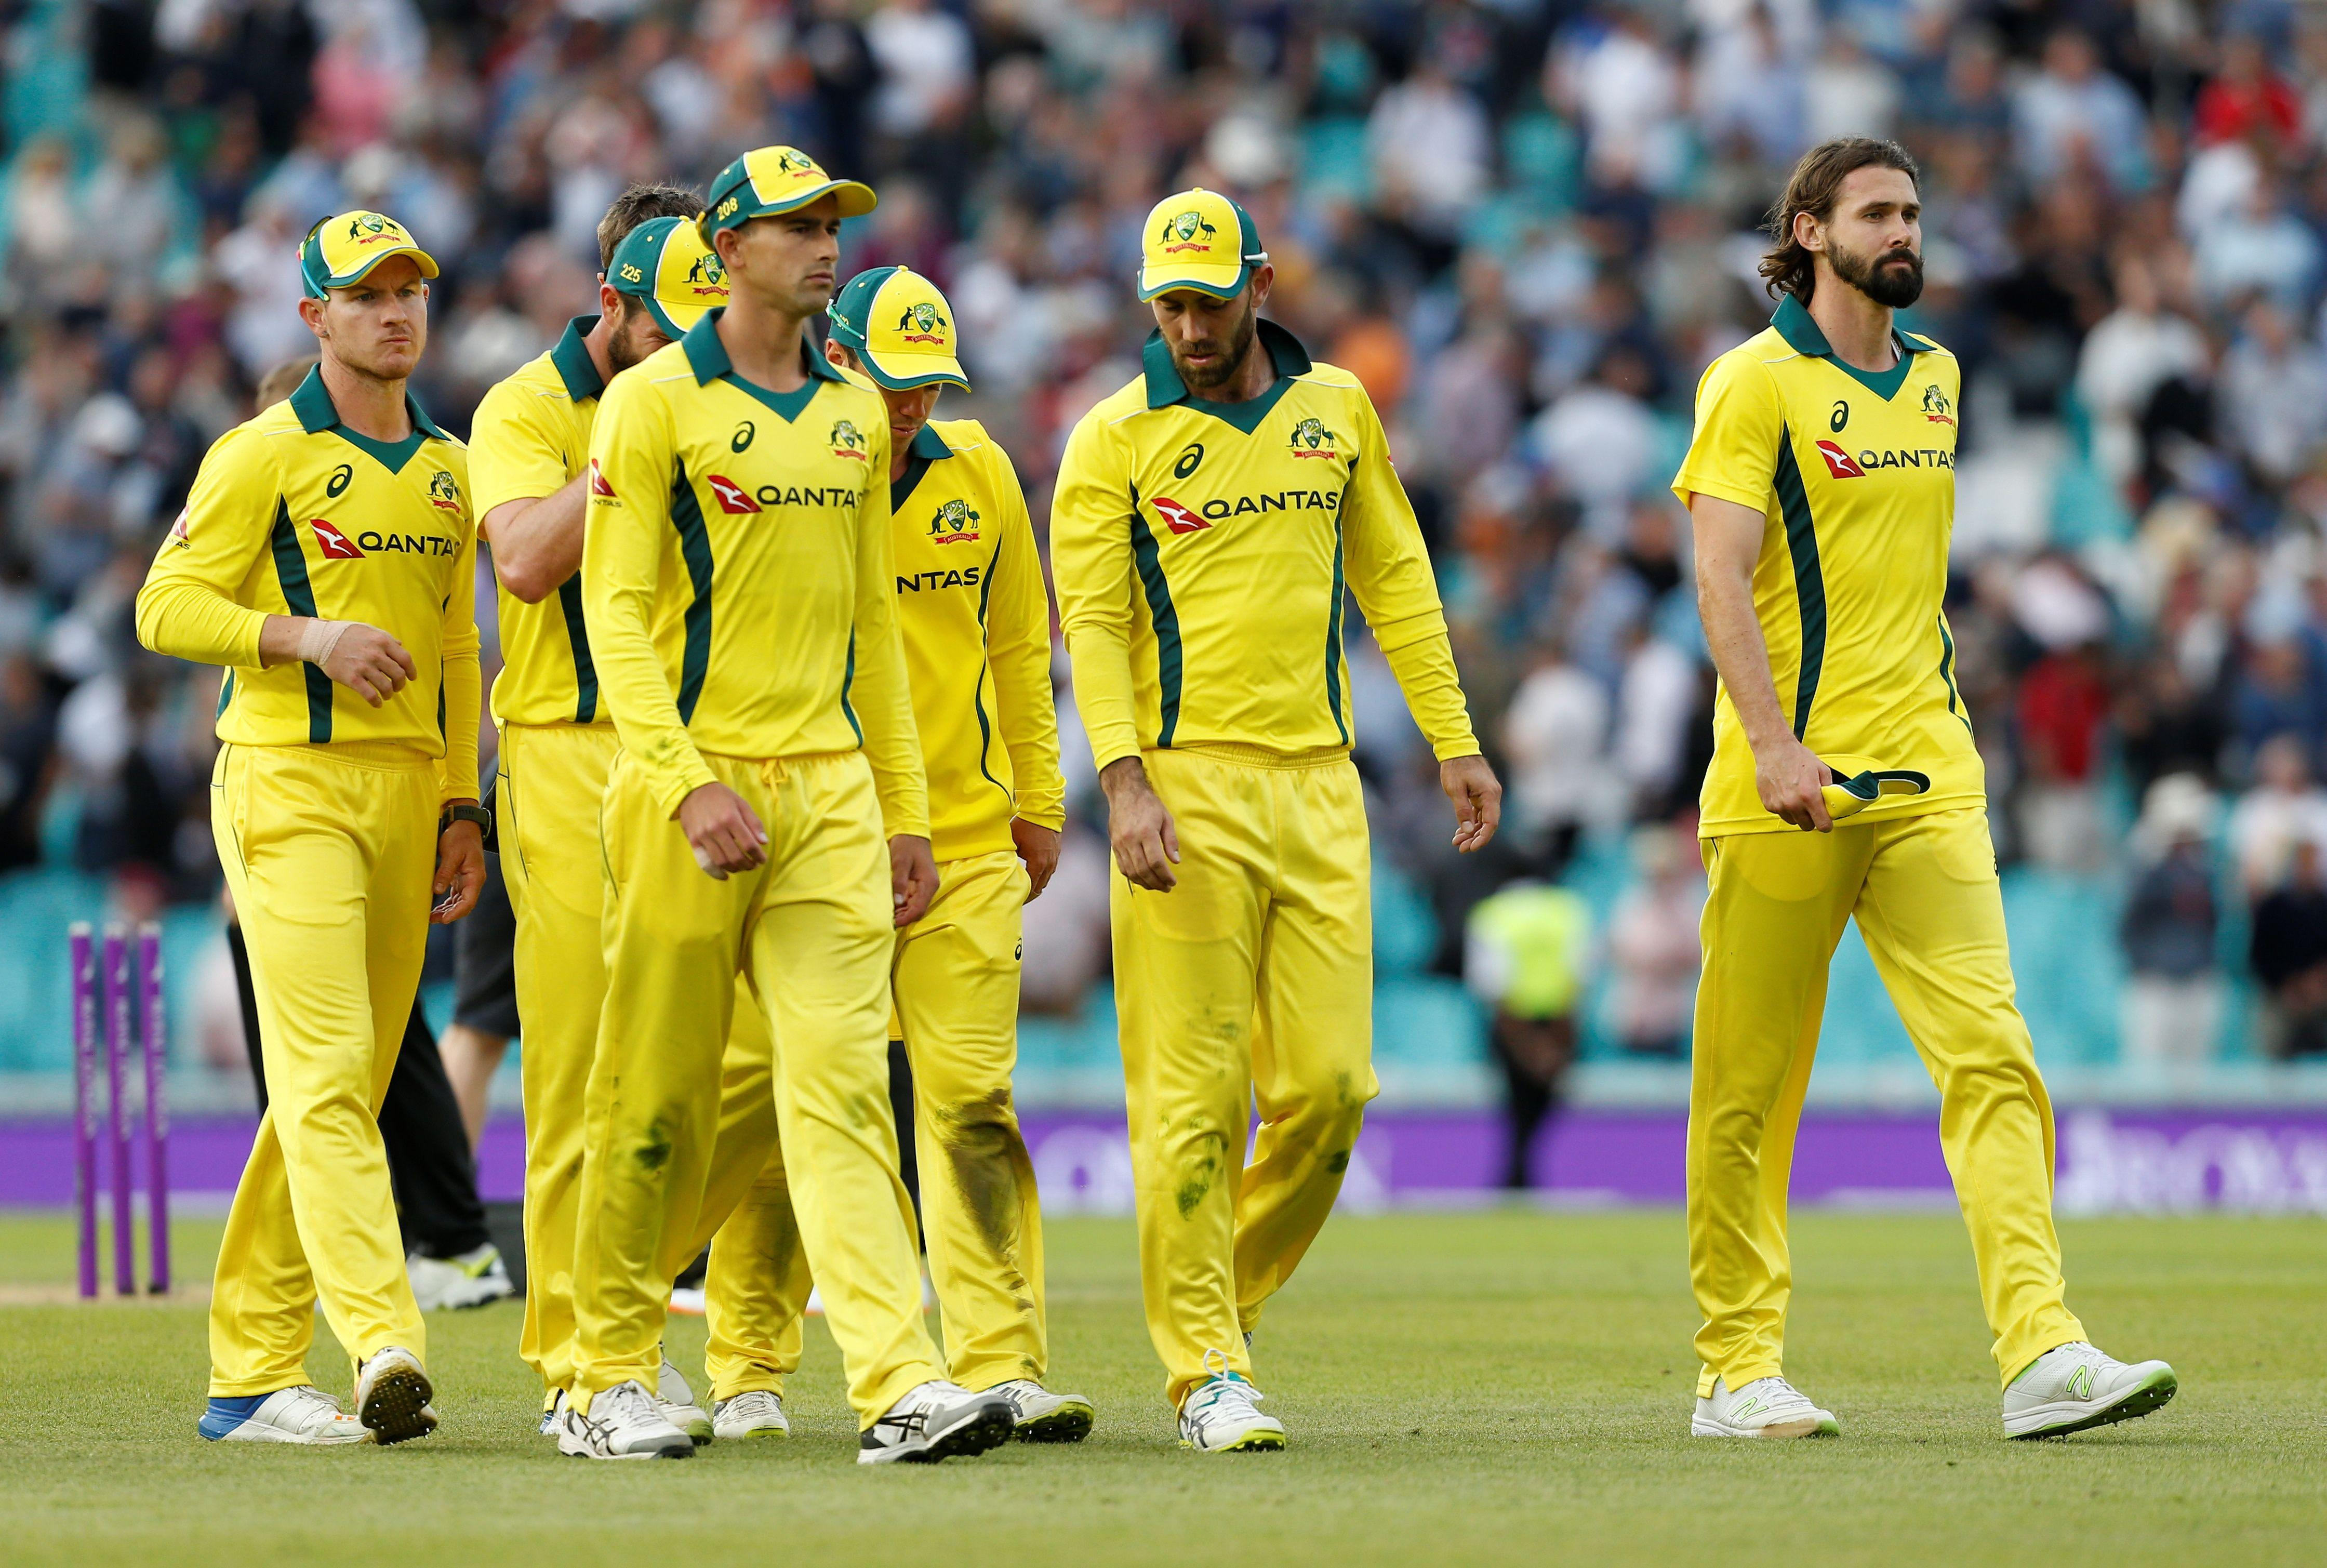 Australia struggled with the bat and will need to improve